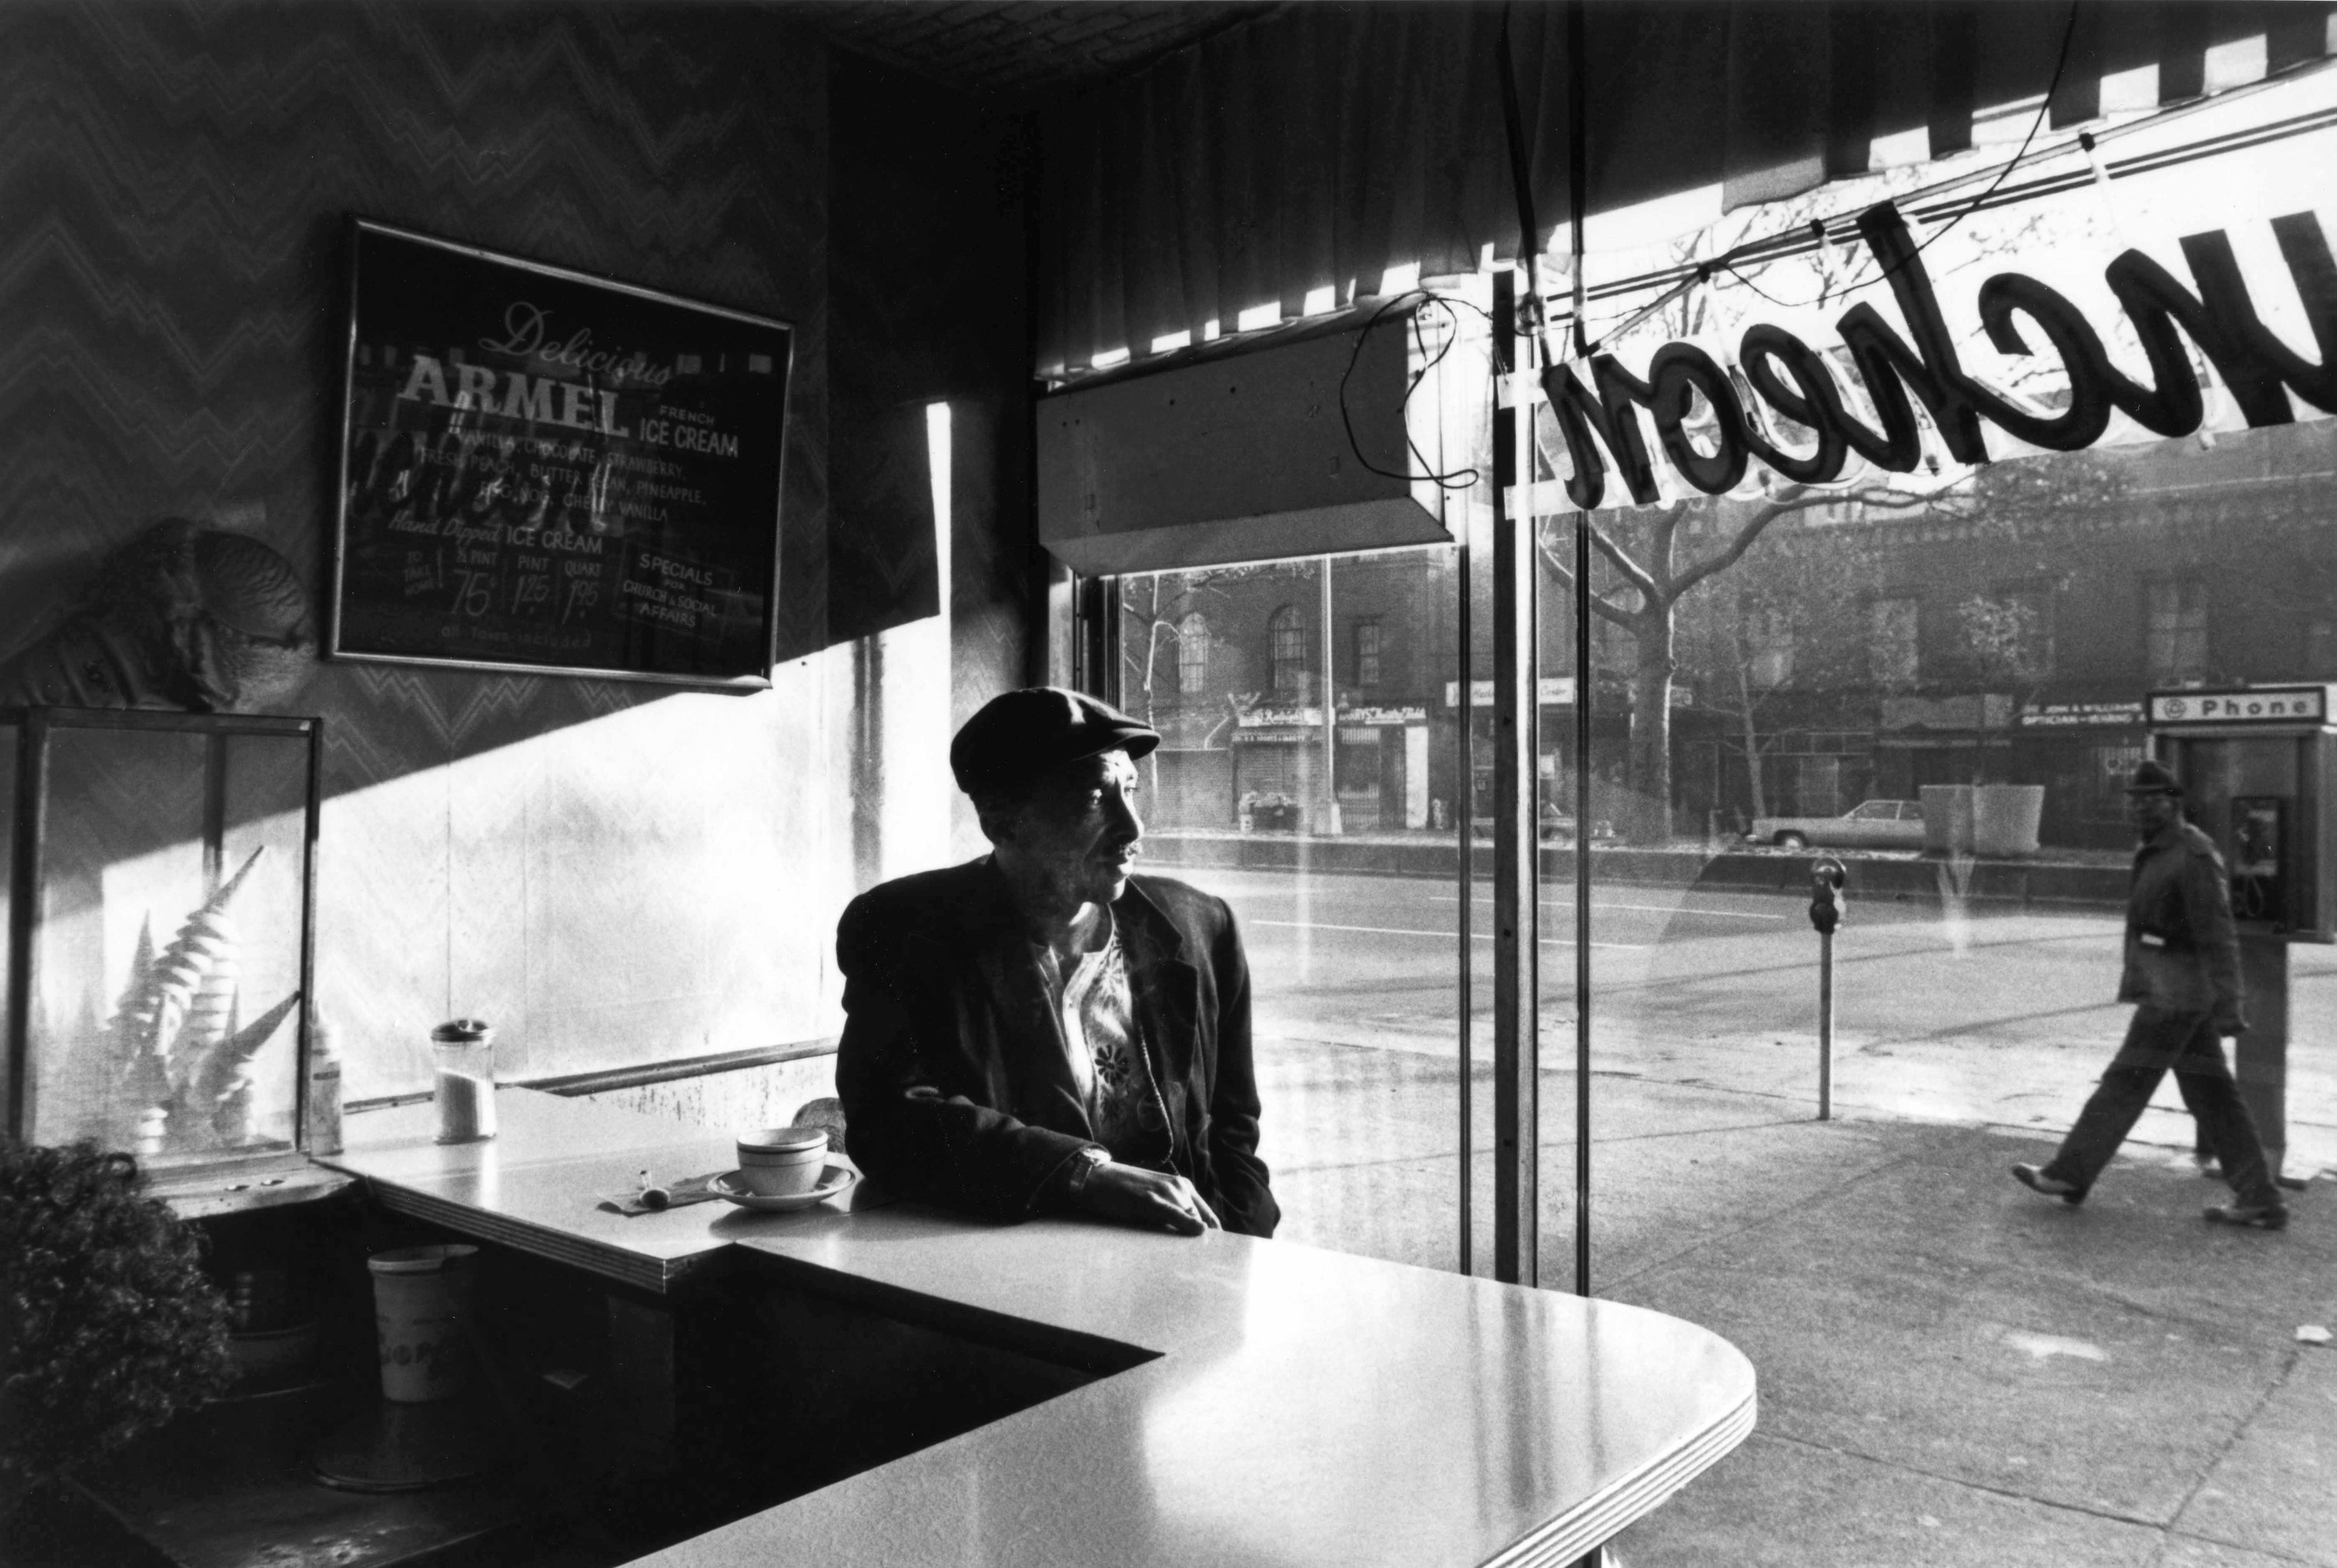 A man sits at a diner counter alone with a cup of coffee, looking out the window as another man walks by